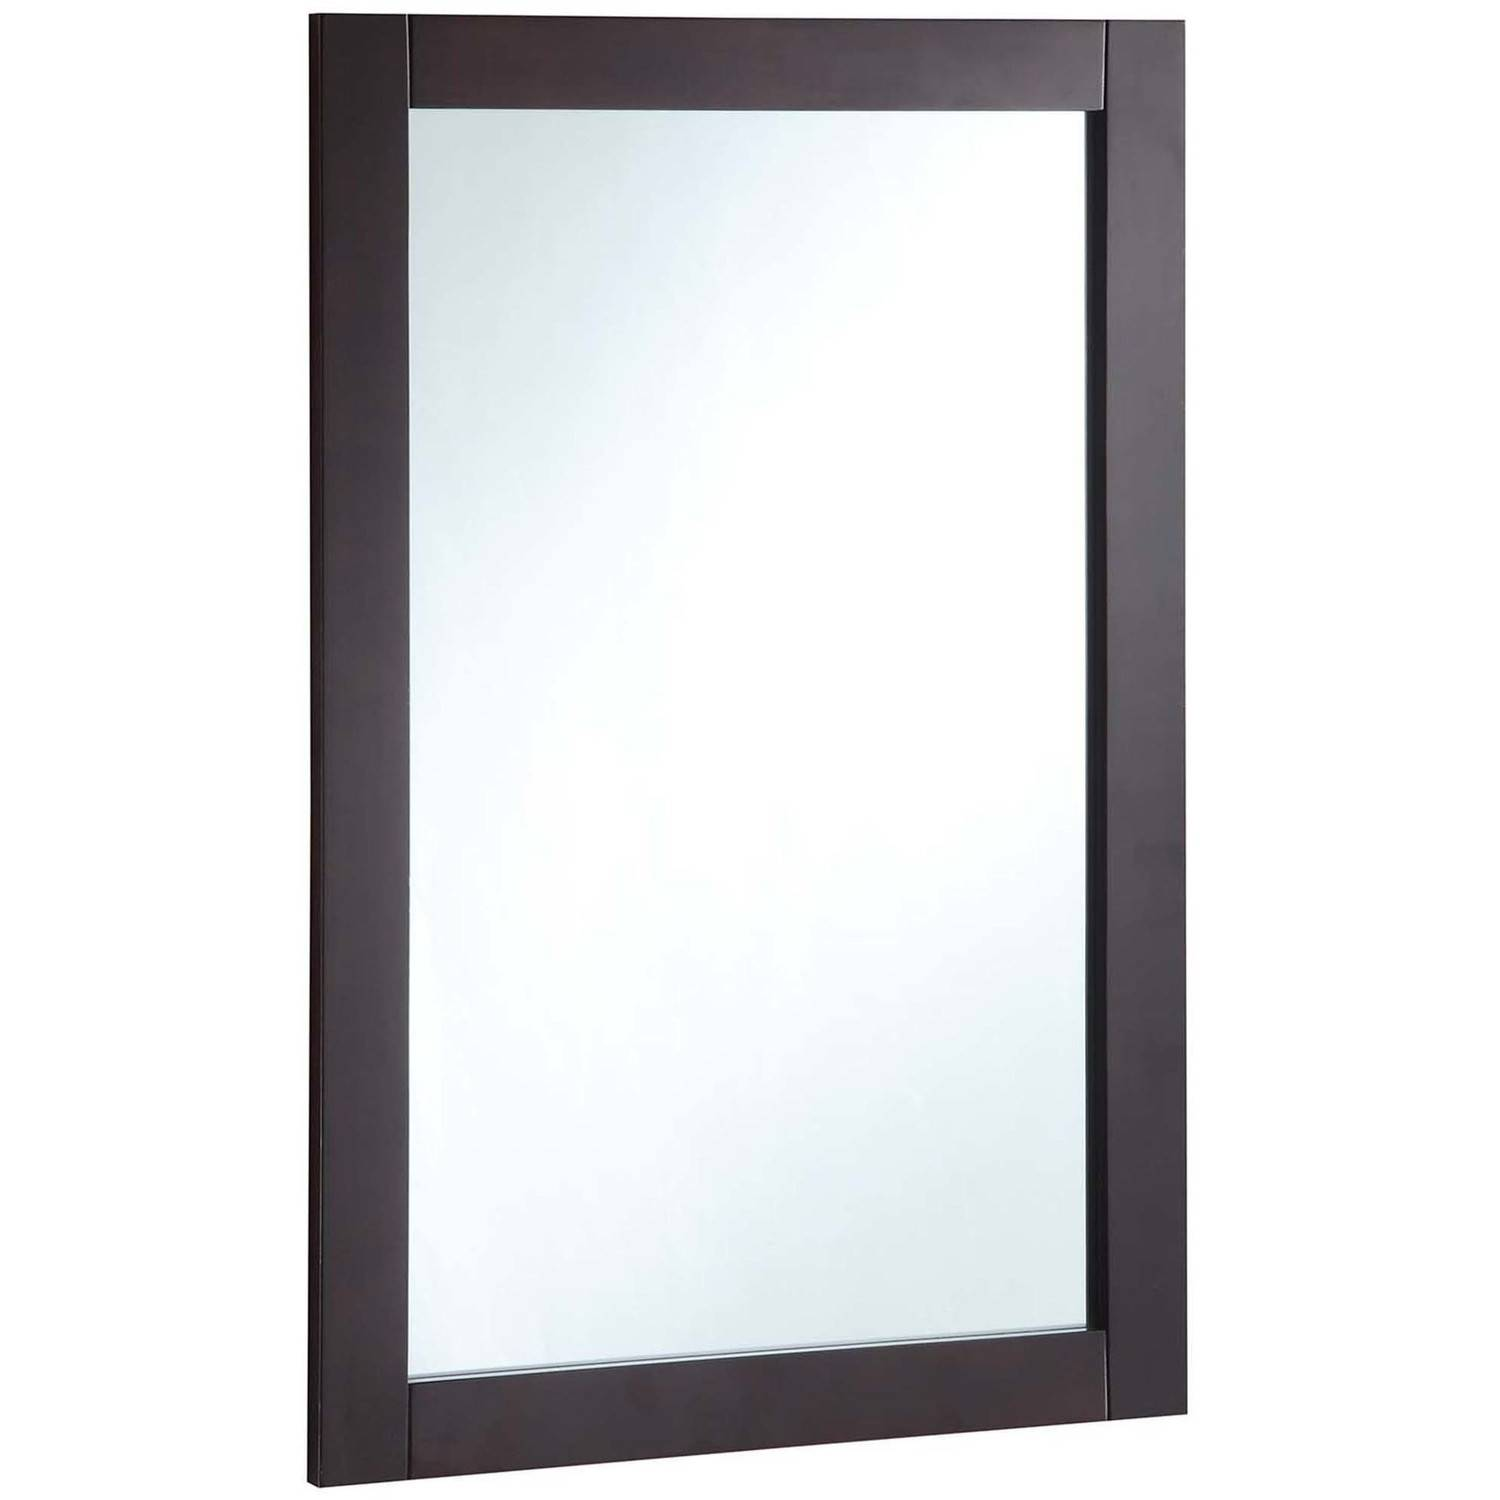 "Design House 547075 20"" x 30"" Vanity Mirror, Espresso by Design House"